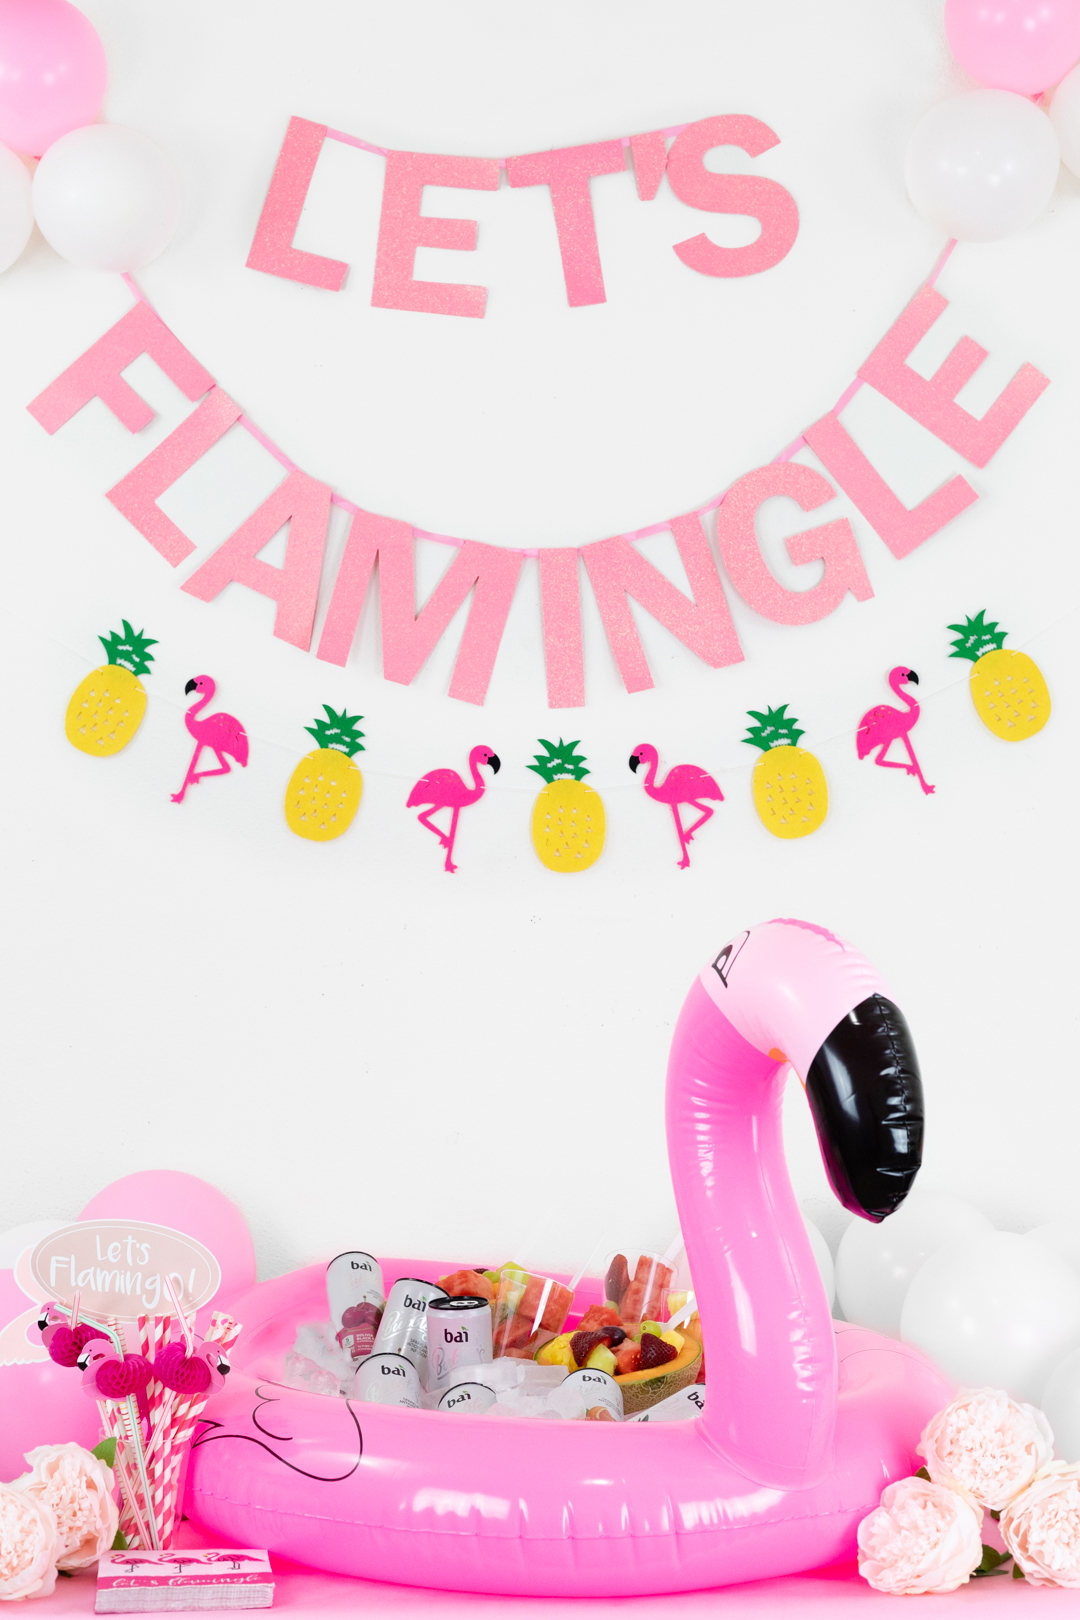 Flamingo Party Float with drinks. Summer Party Ideas with Bai Bubbles.